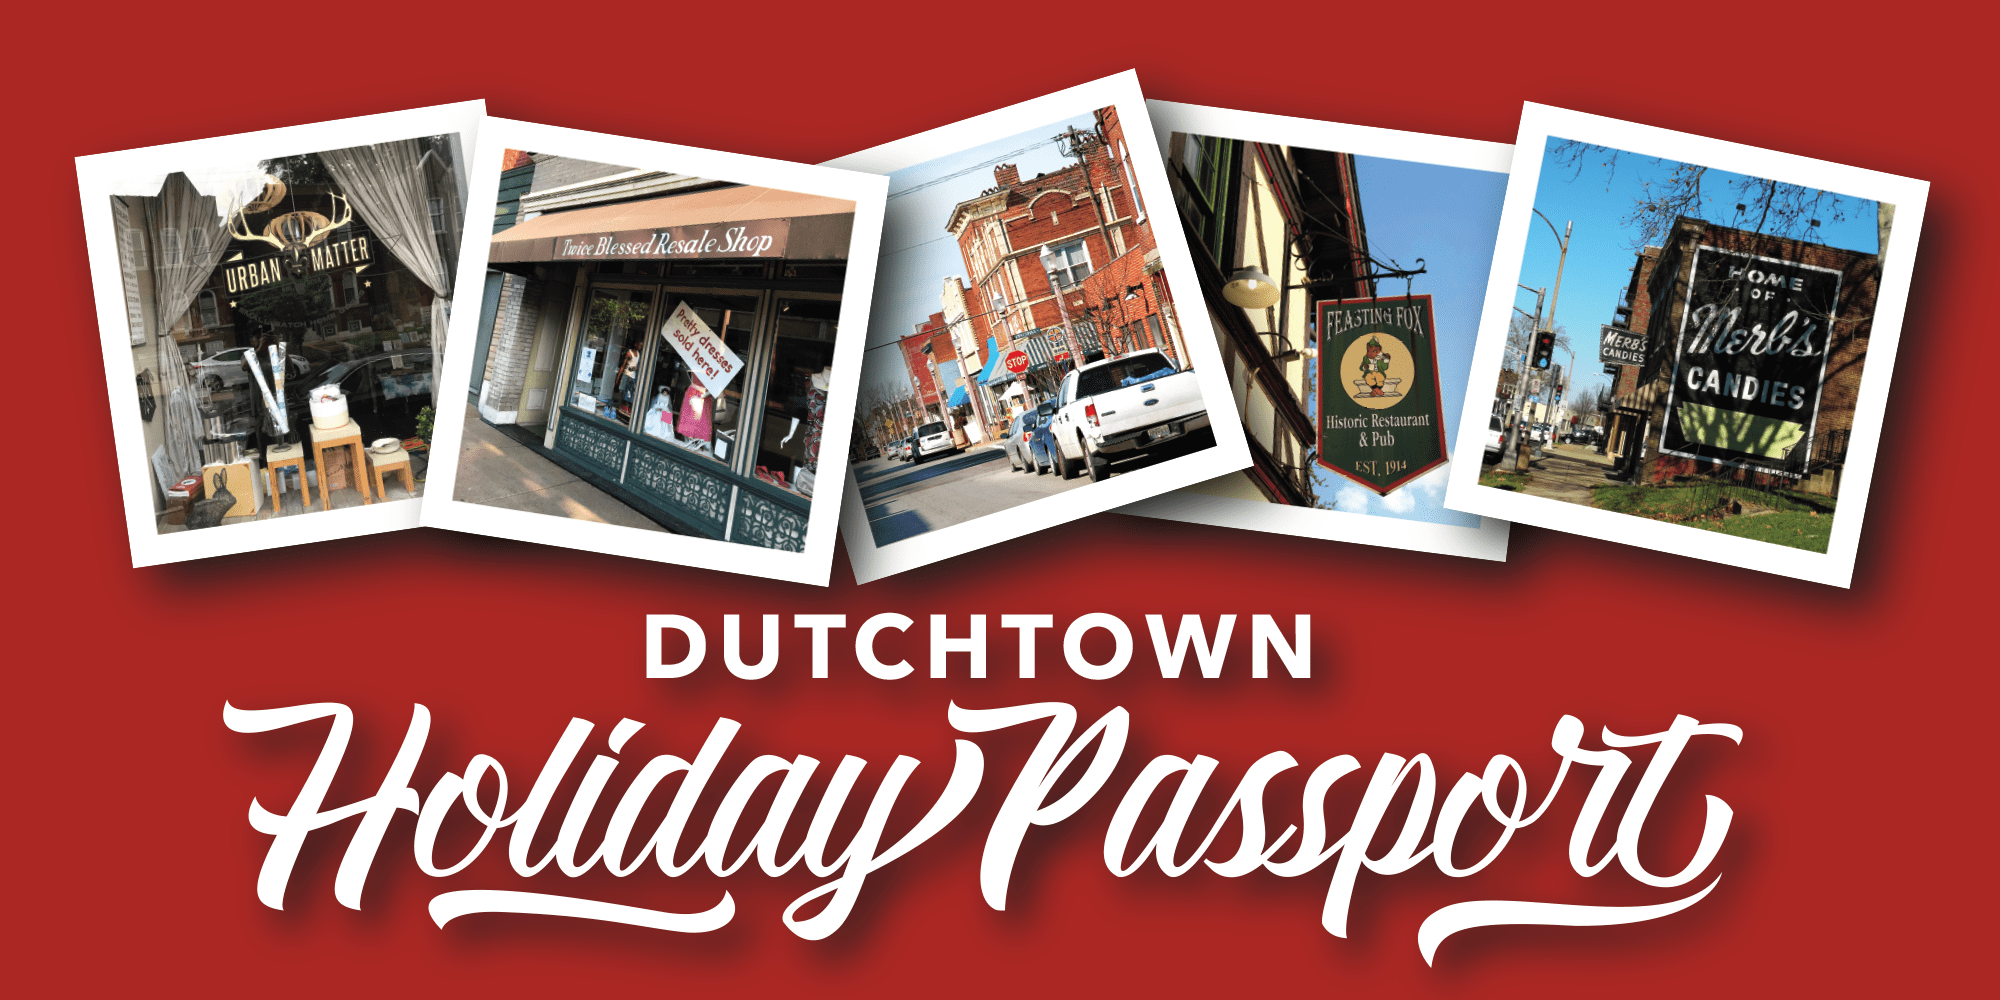 Dutchtown Holiday Passport.